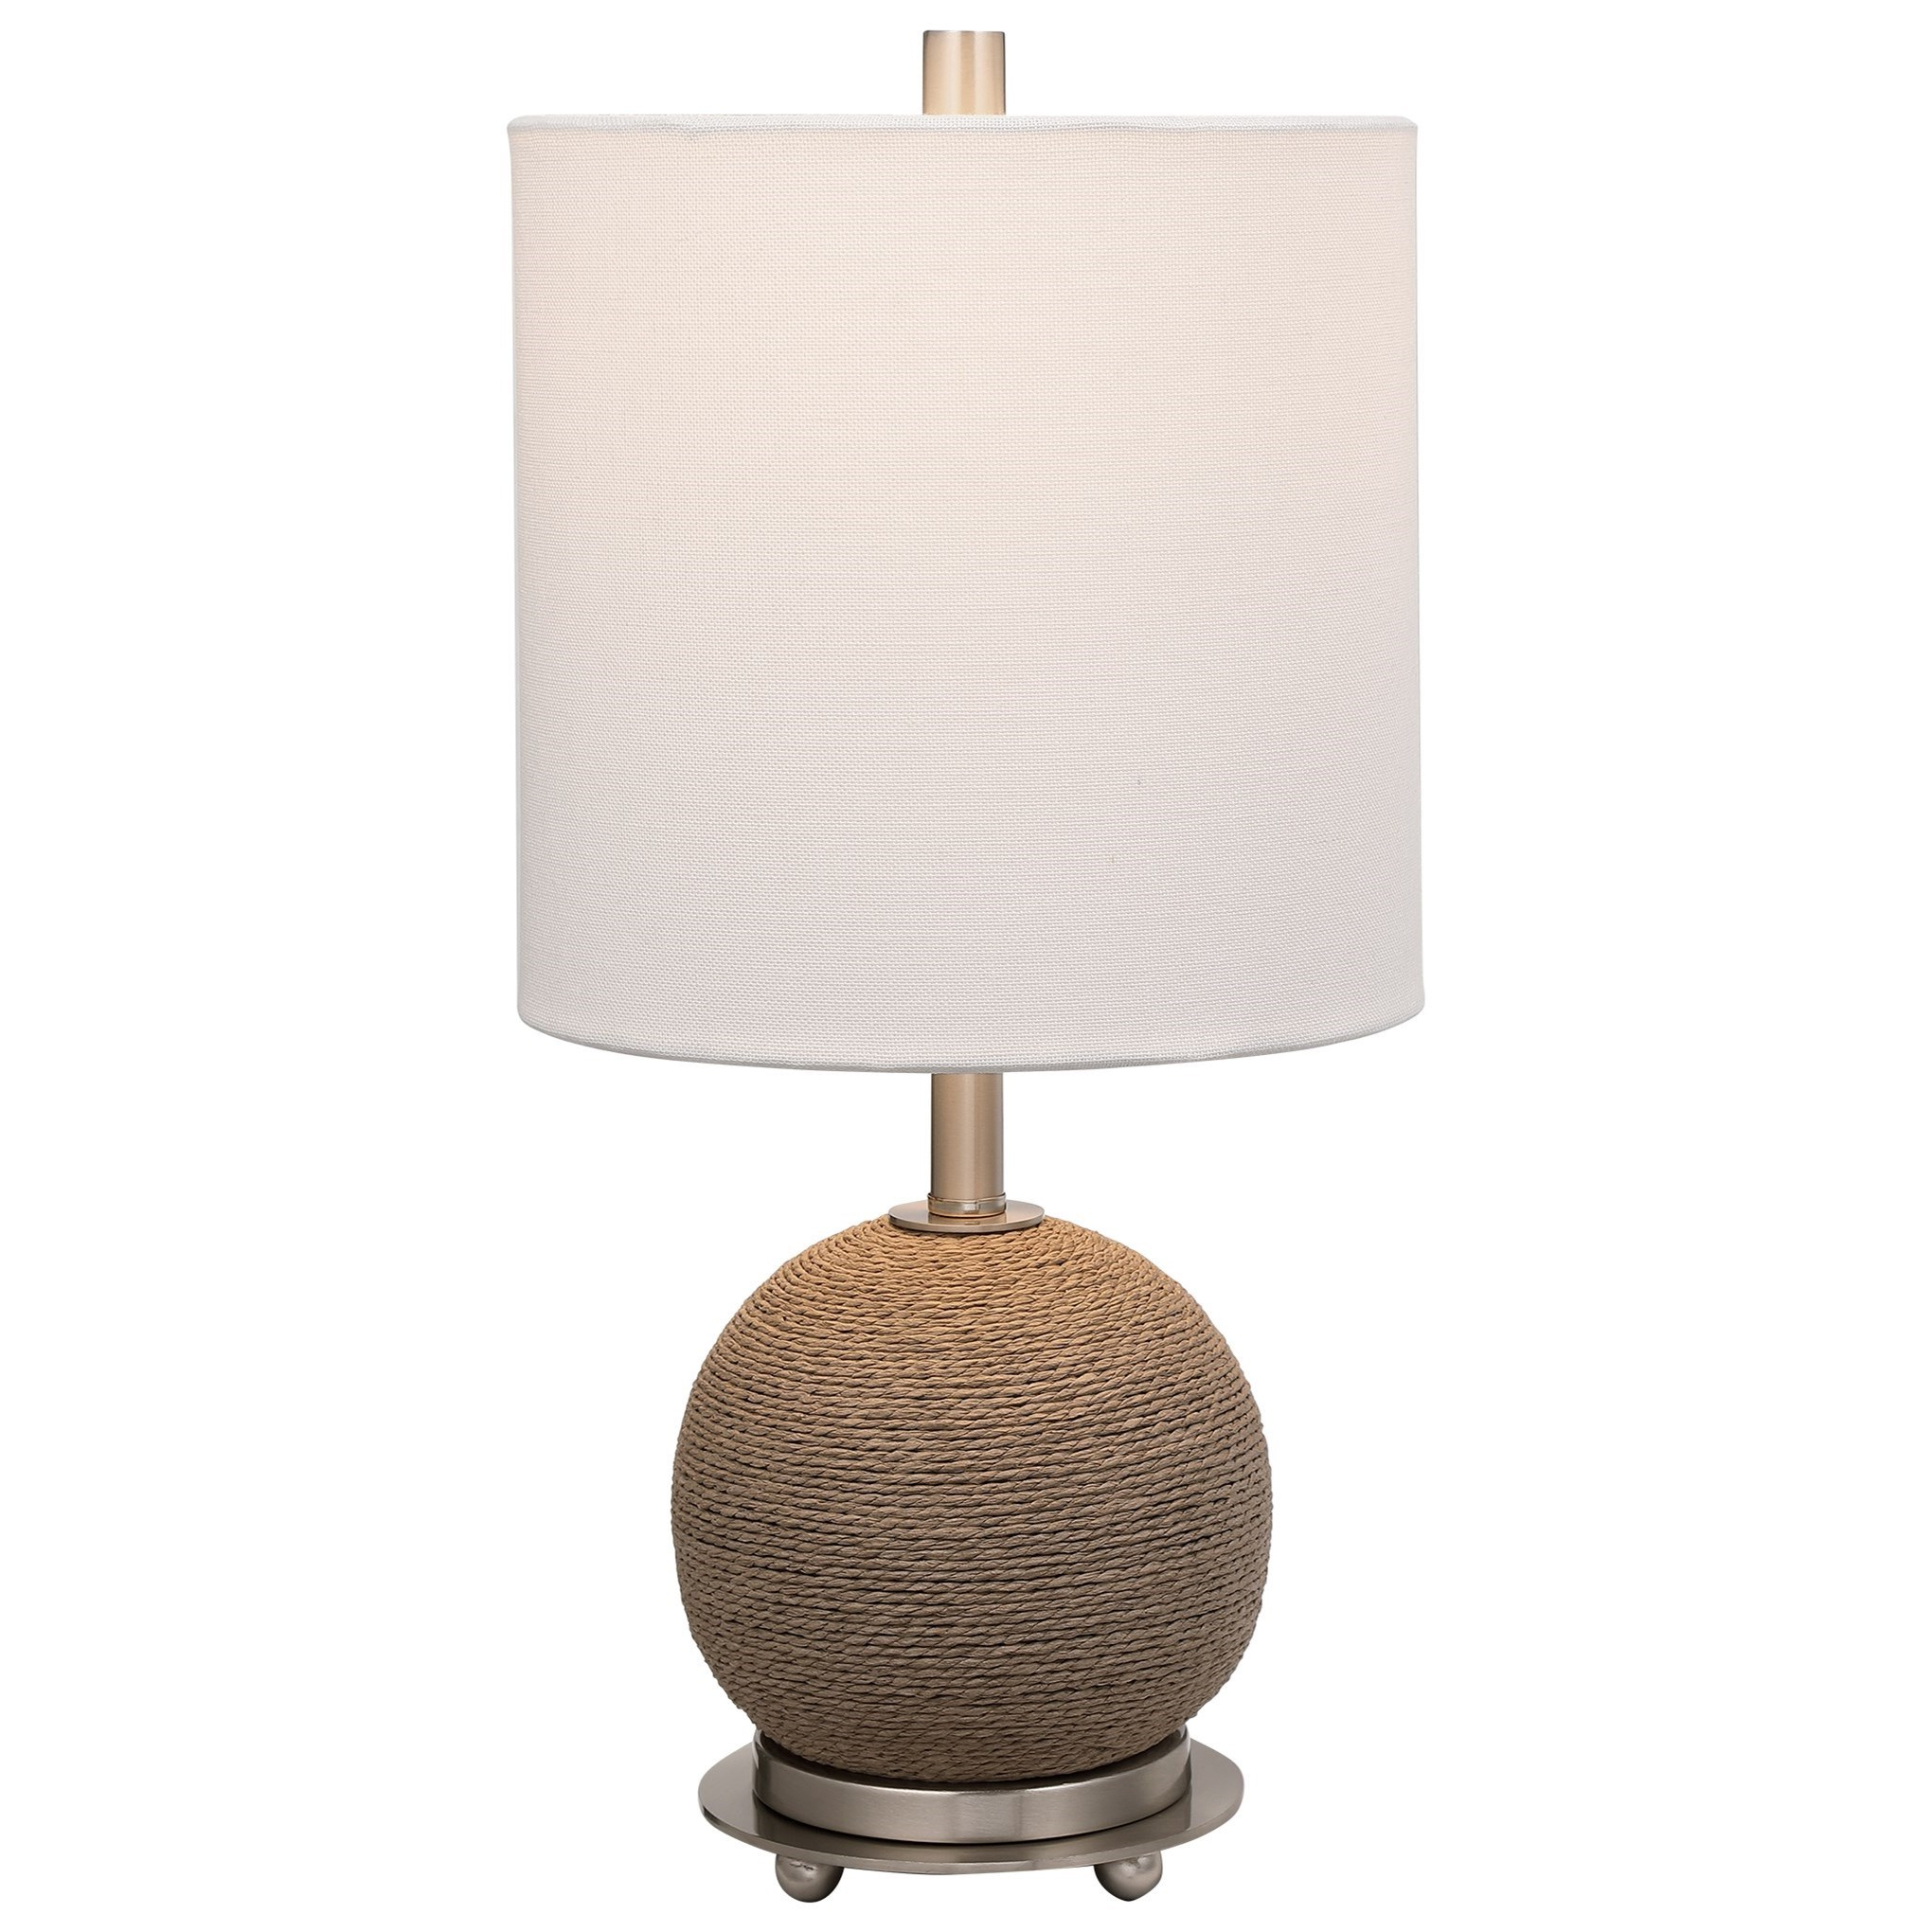 Accent Lamps Captiva Rattan Accent Lamp by Uttermost at Furniture Superstore - Rochester, MN